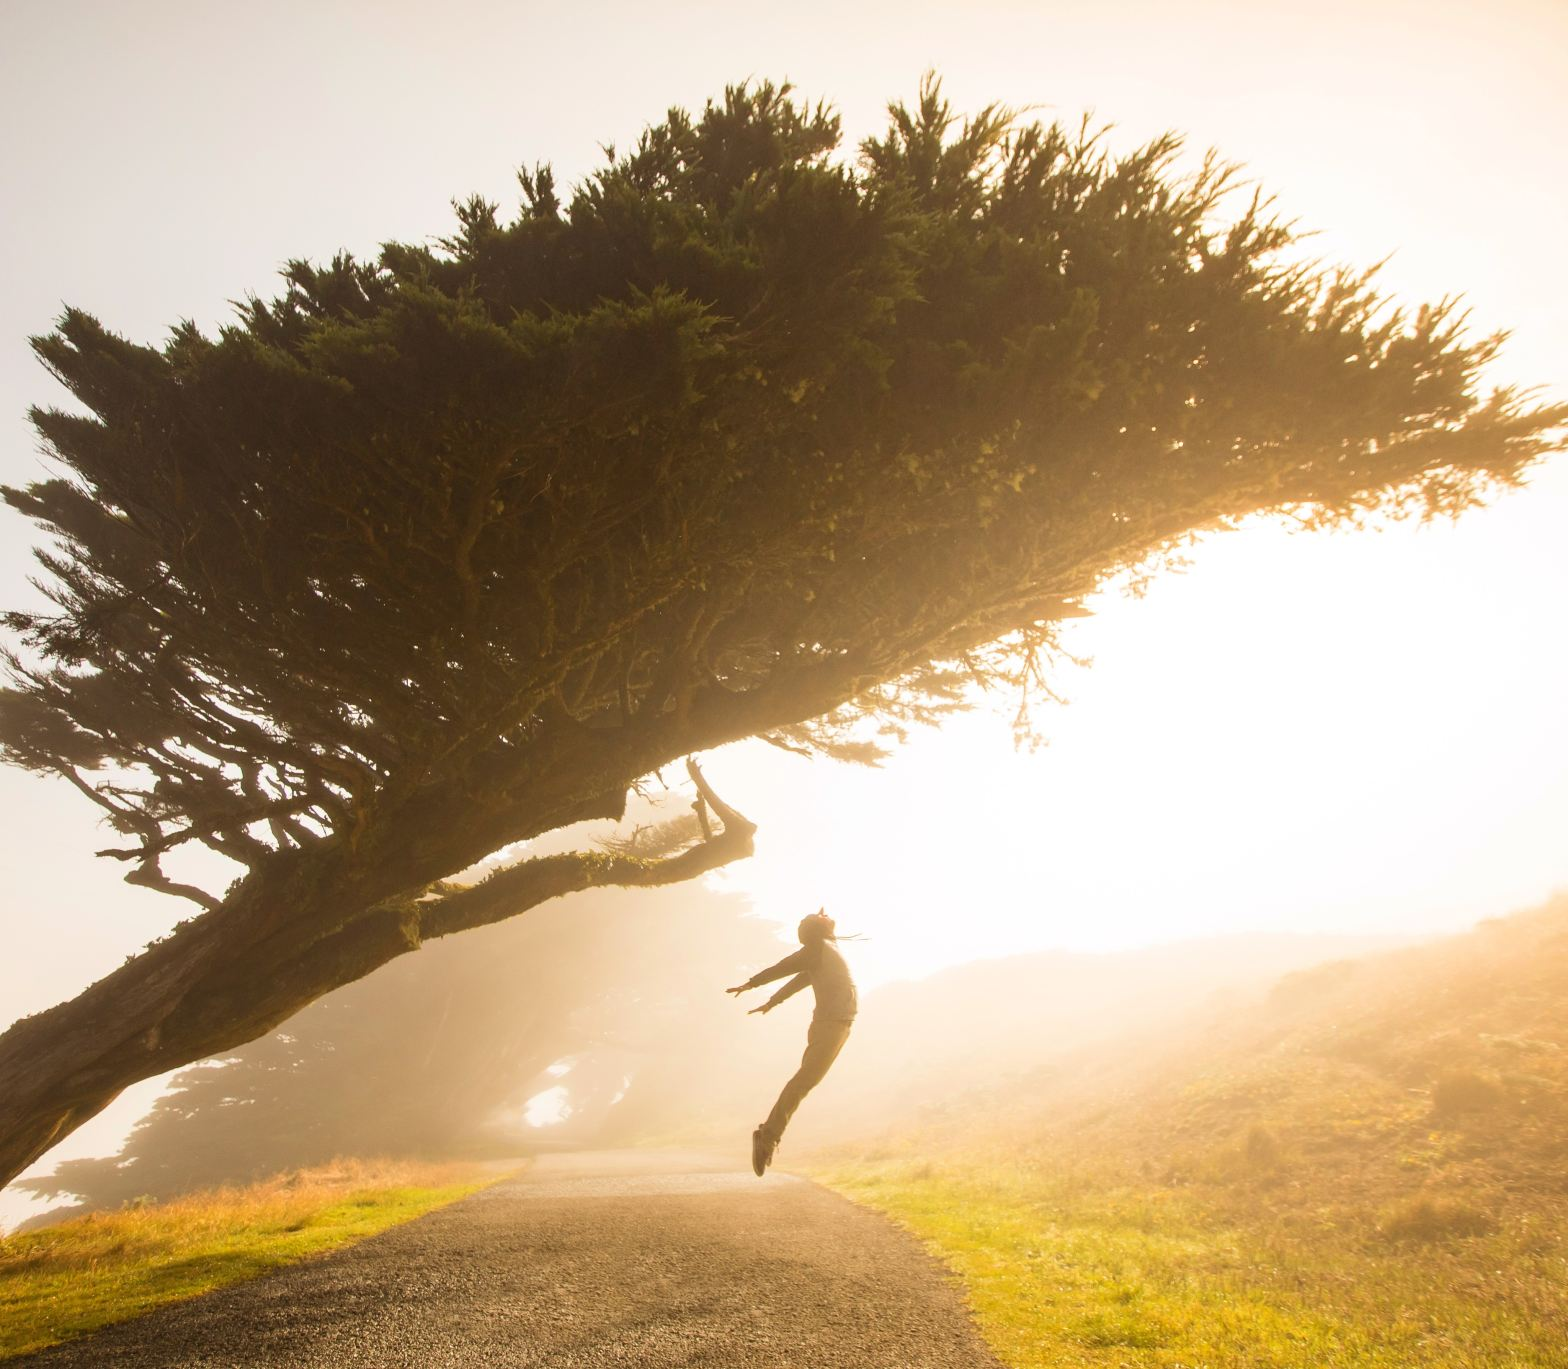 silhouette of person jumping under tree